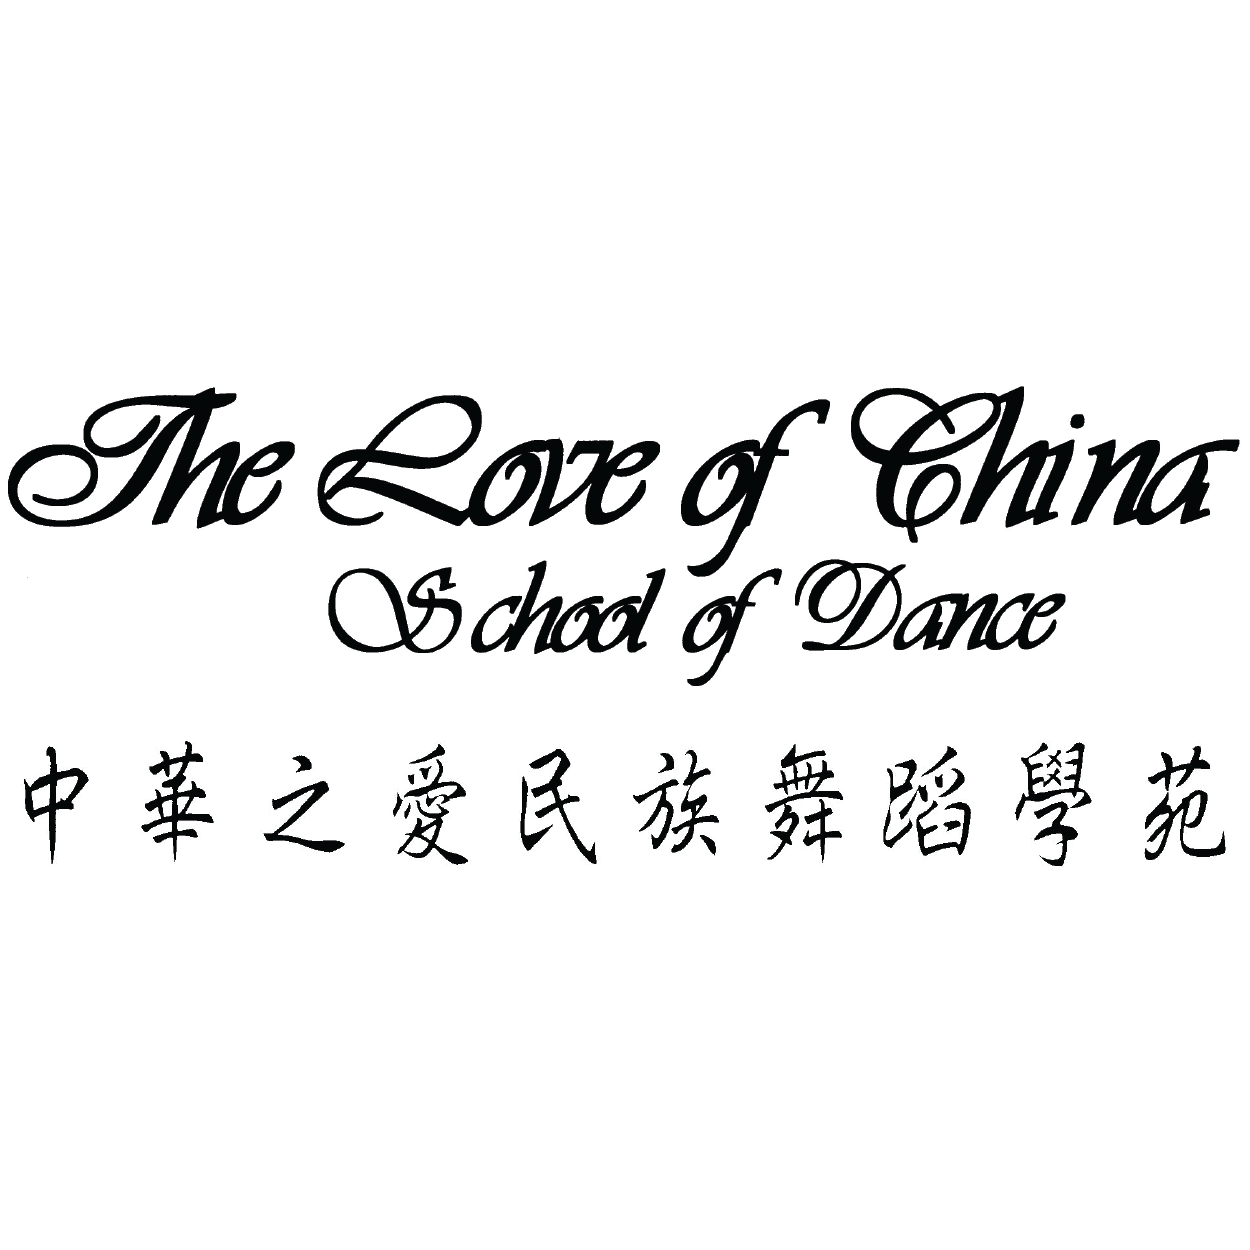 LoveofChina.png